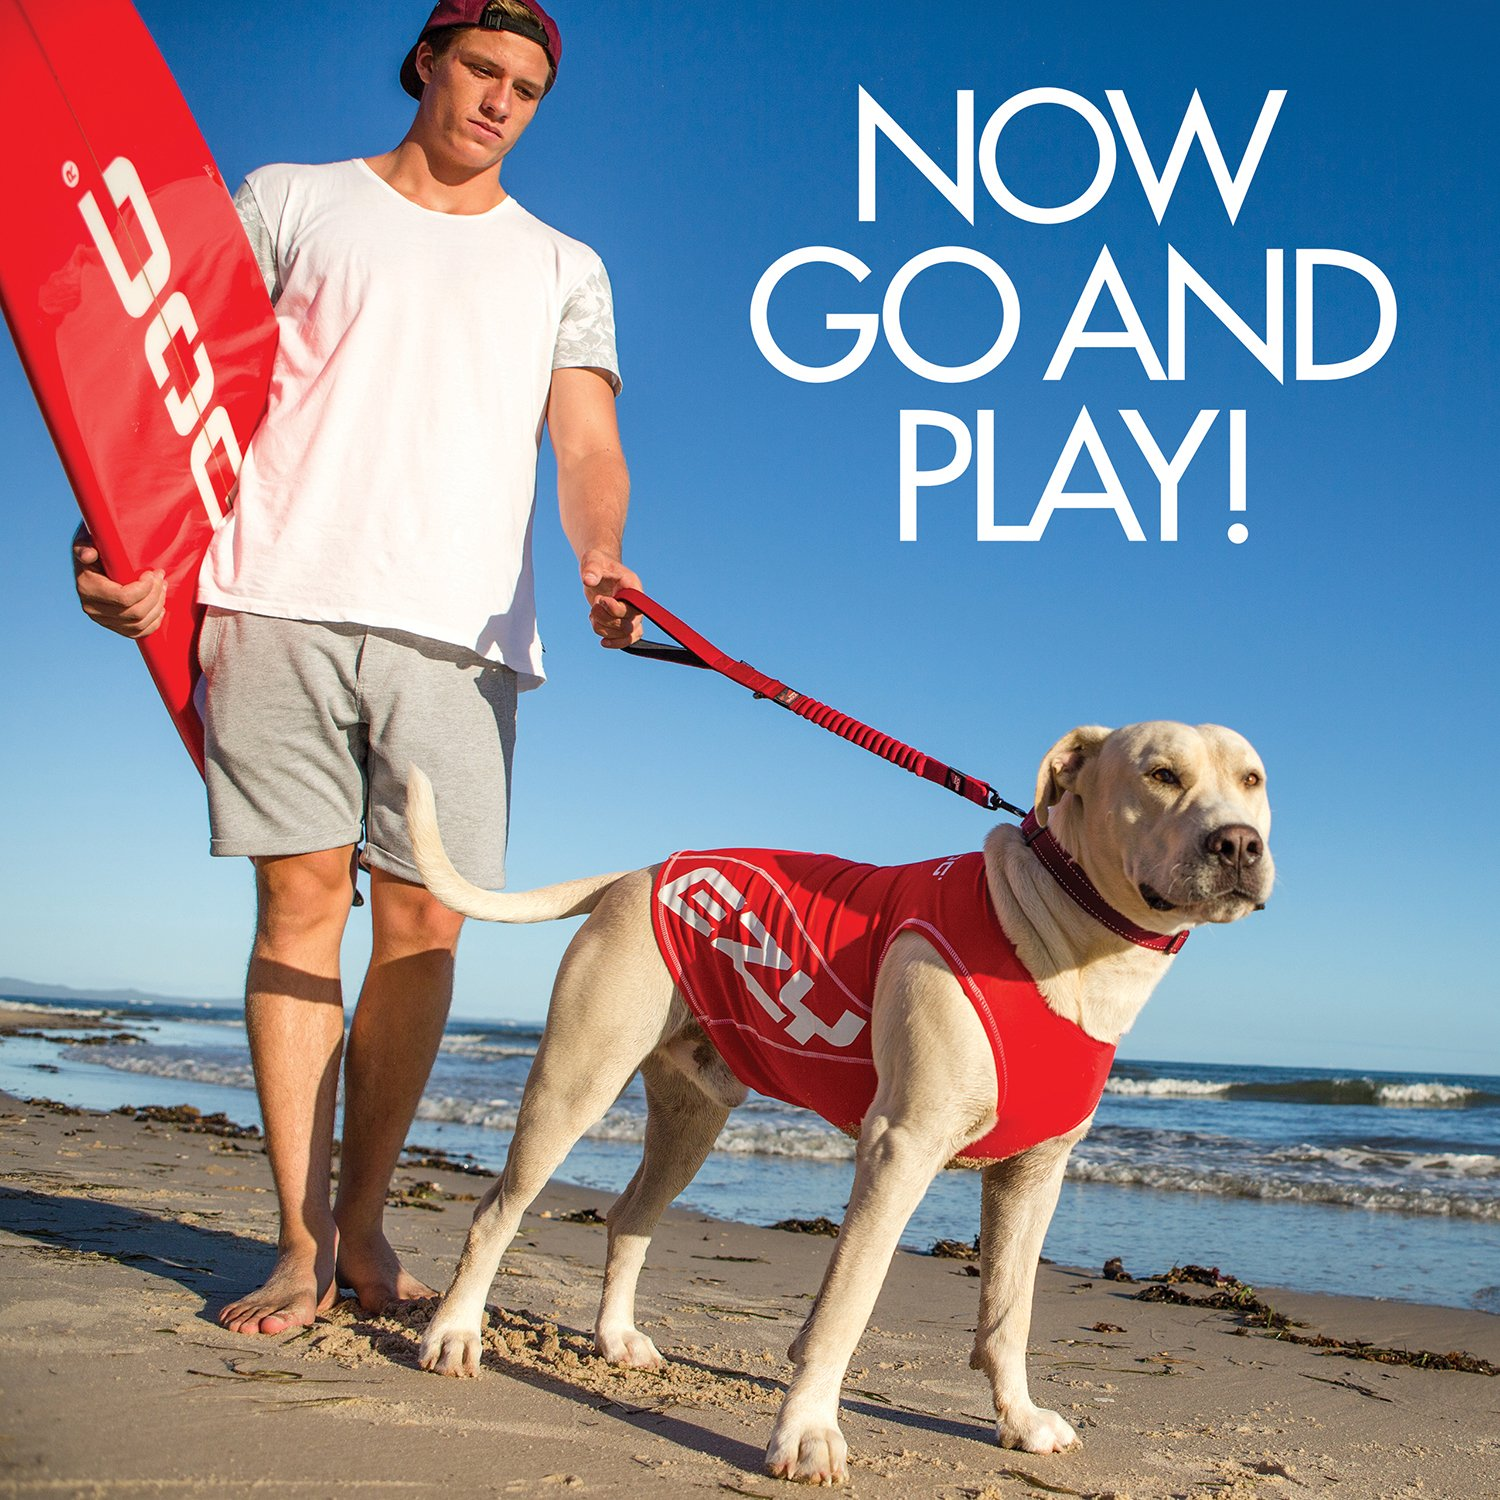 EzyDog Rashguard Vest - Premium Dog Shirt Allowing All-Day Water Use - Tested to Provide 50+ UV Protection - Innovative Designfor a Snug, Comfortable Fit (Medium, Red) by EzyDog